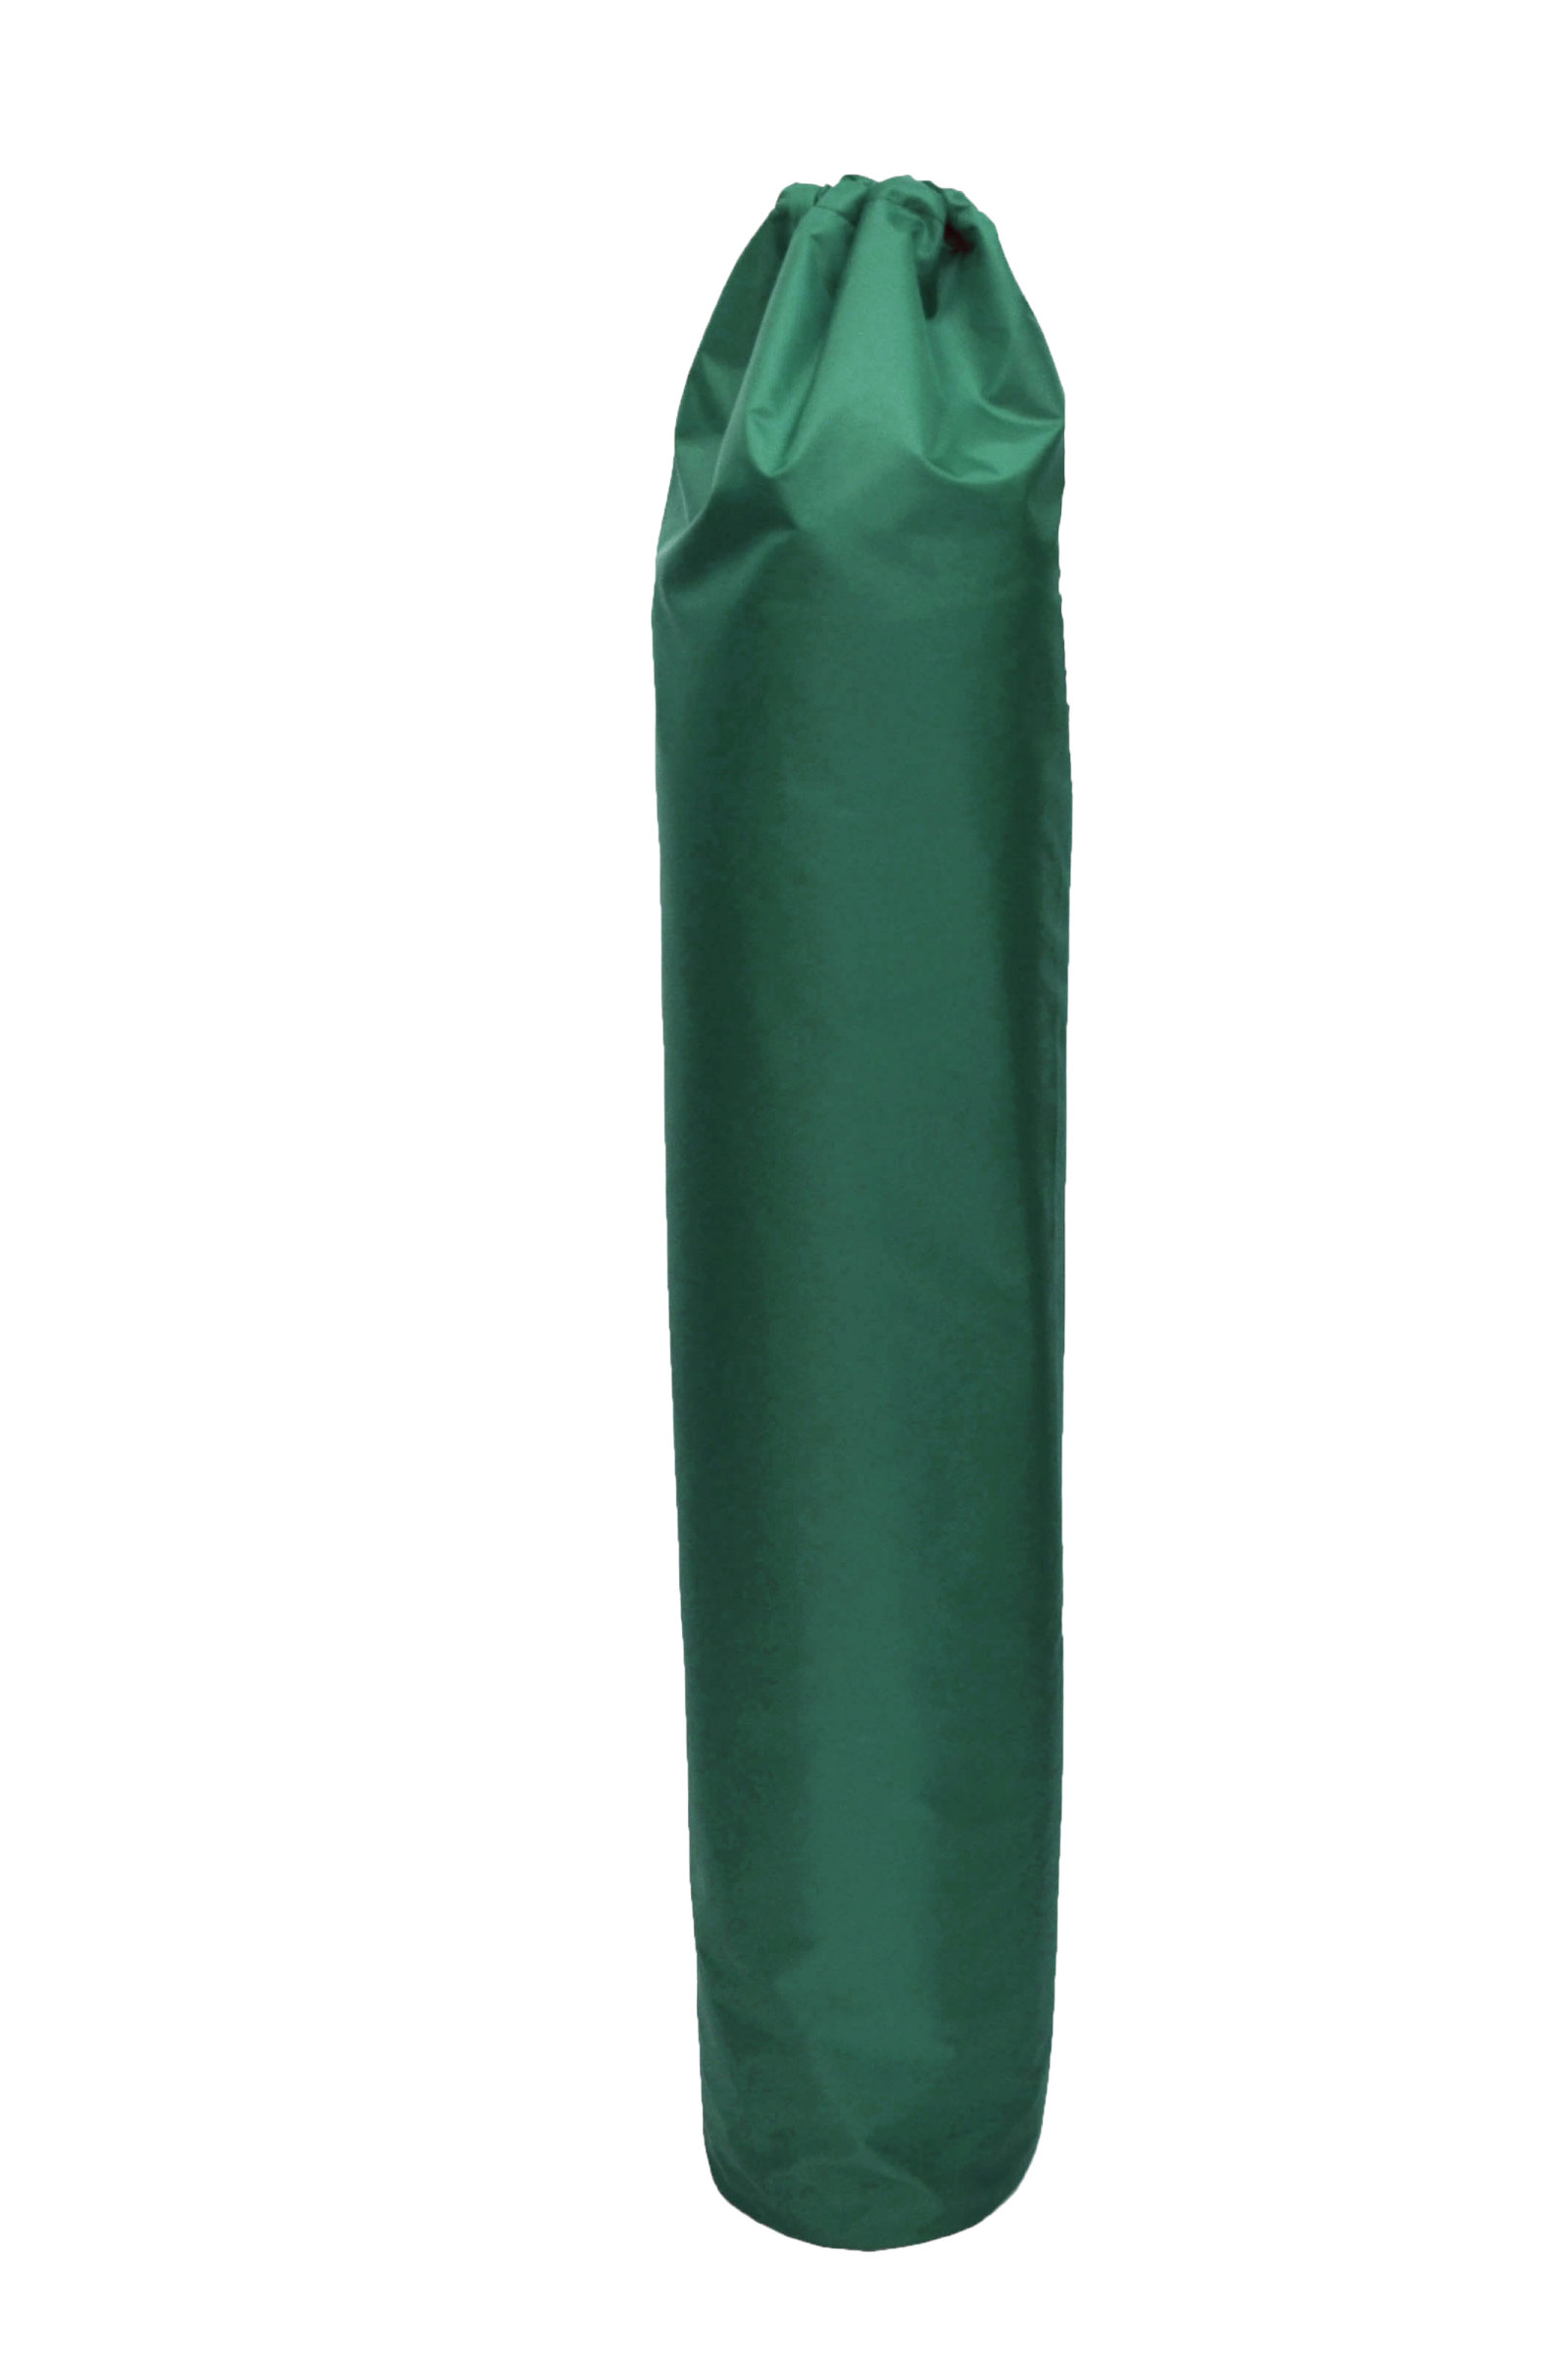 Awning Pole Bag Cover Large Waterproof Material